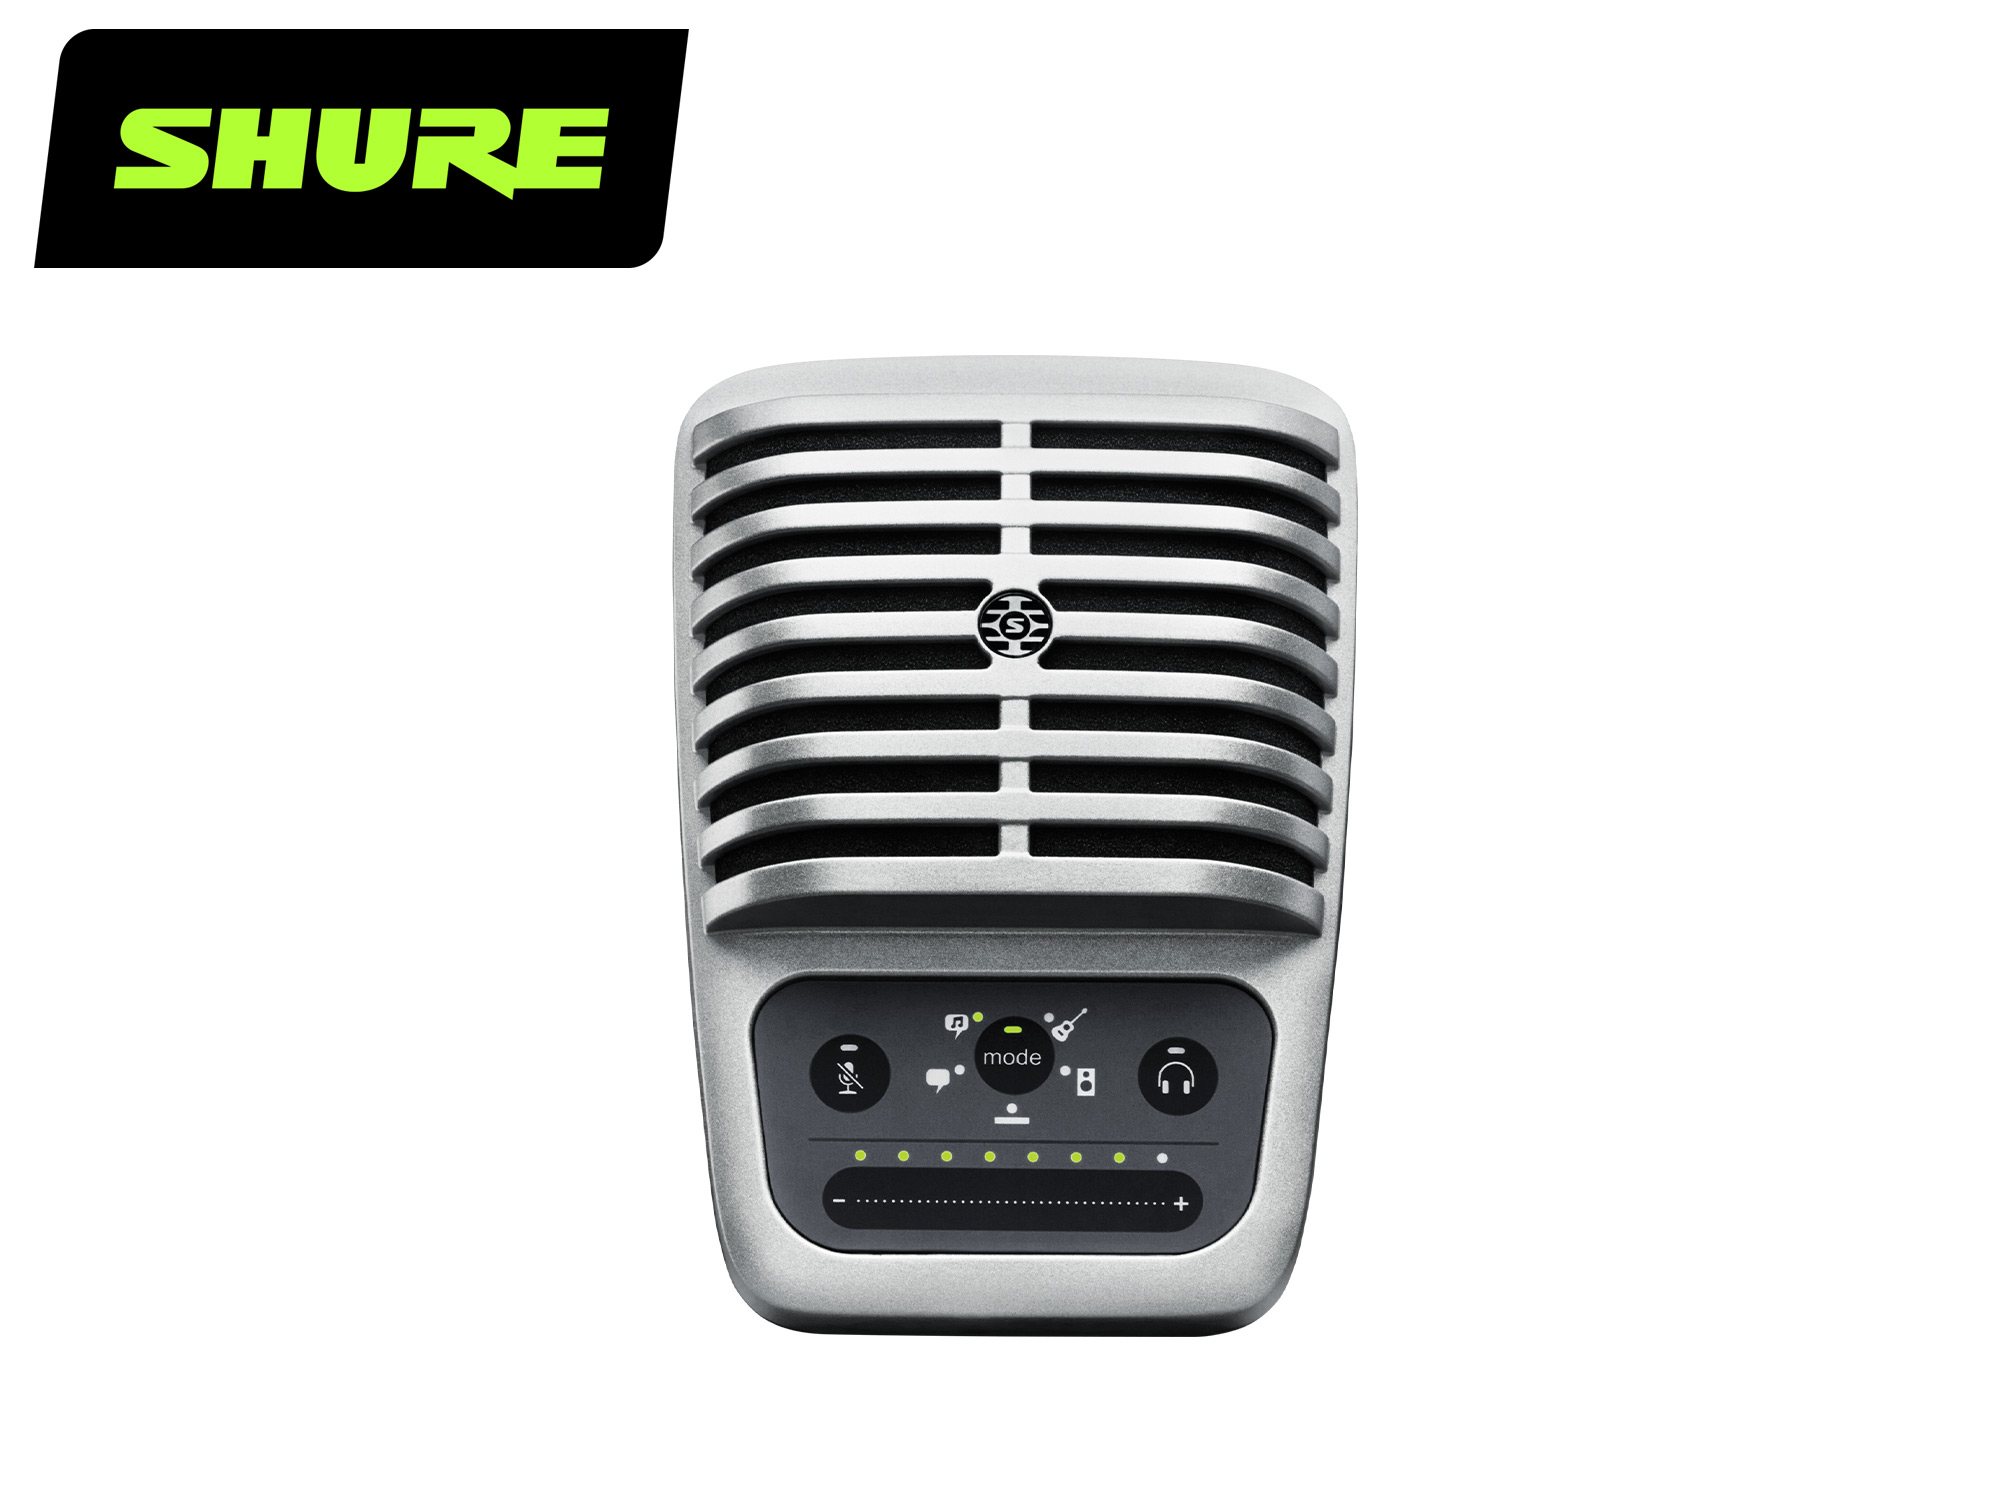 Shure MV51 Digital Large Diaphragm Condenser Microphone